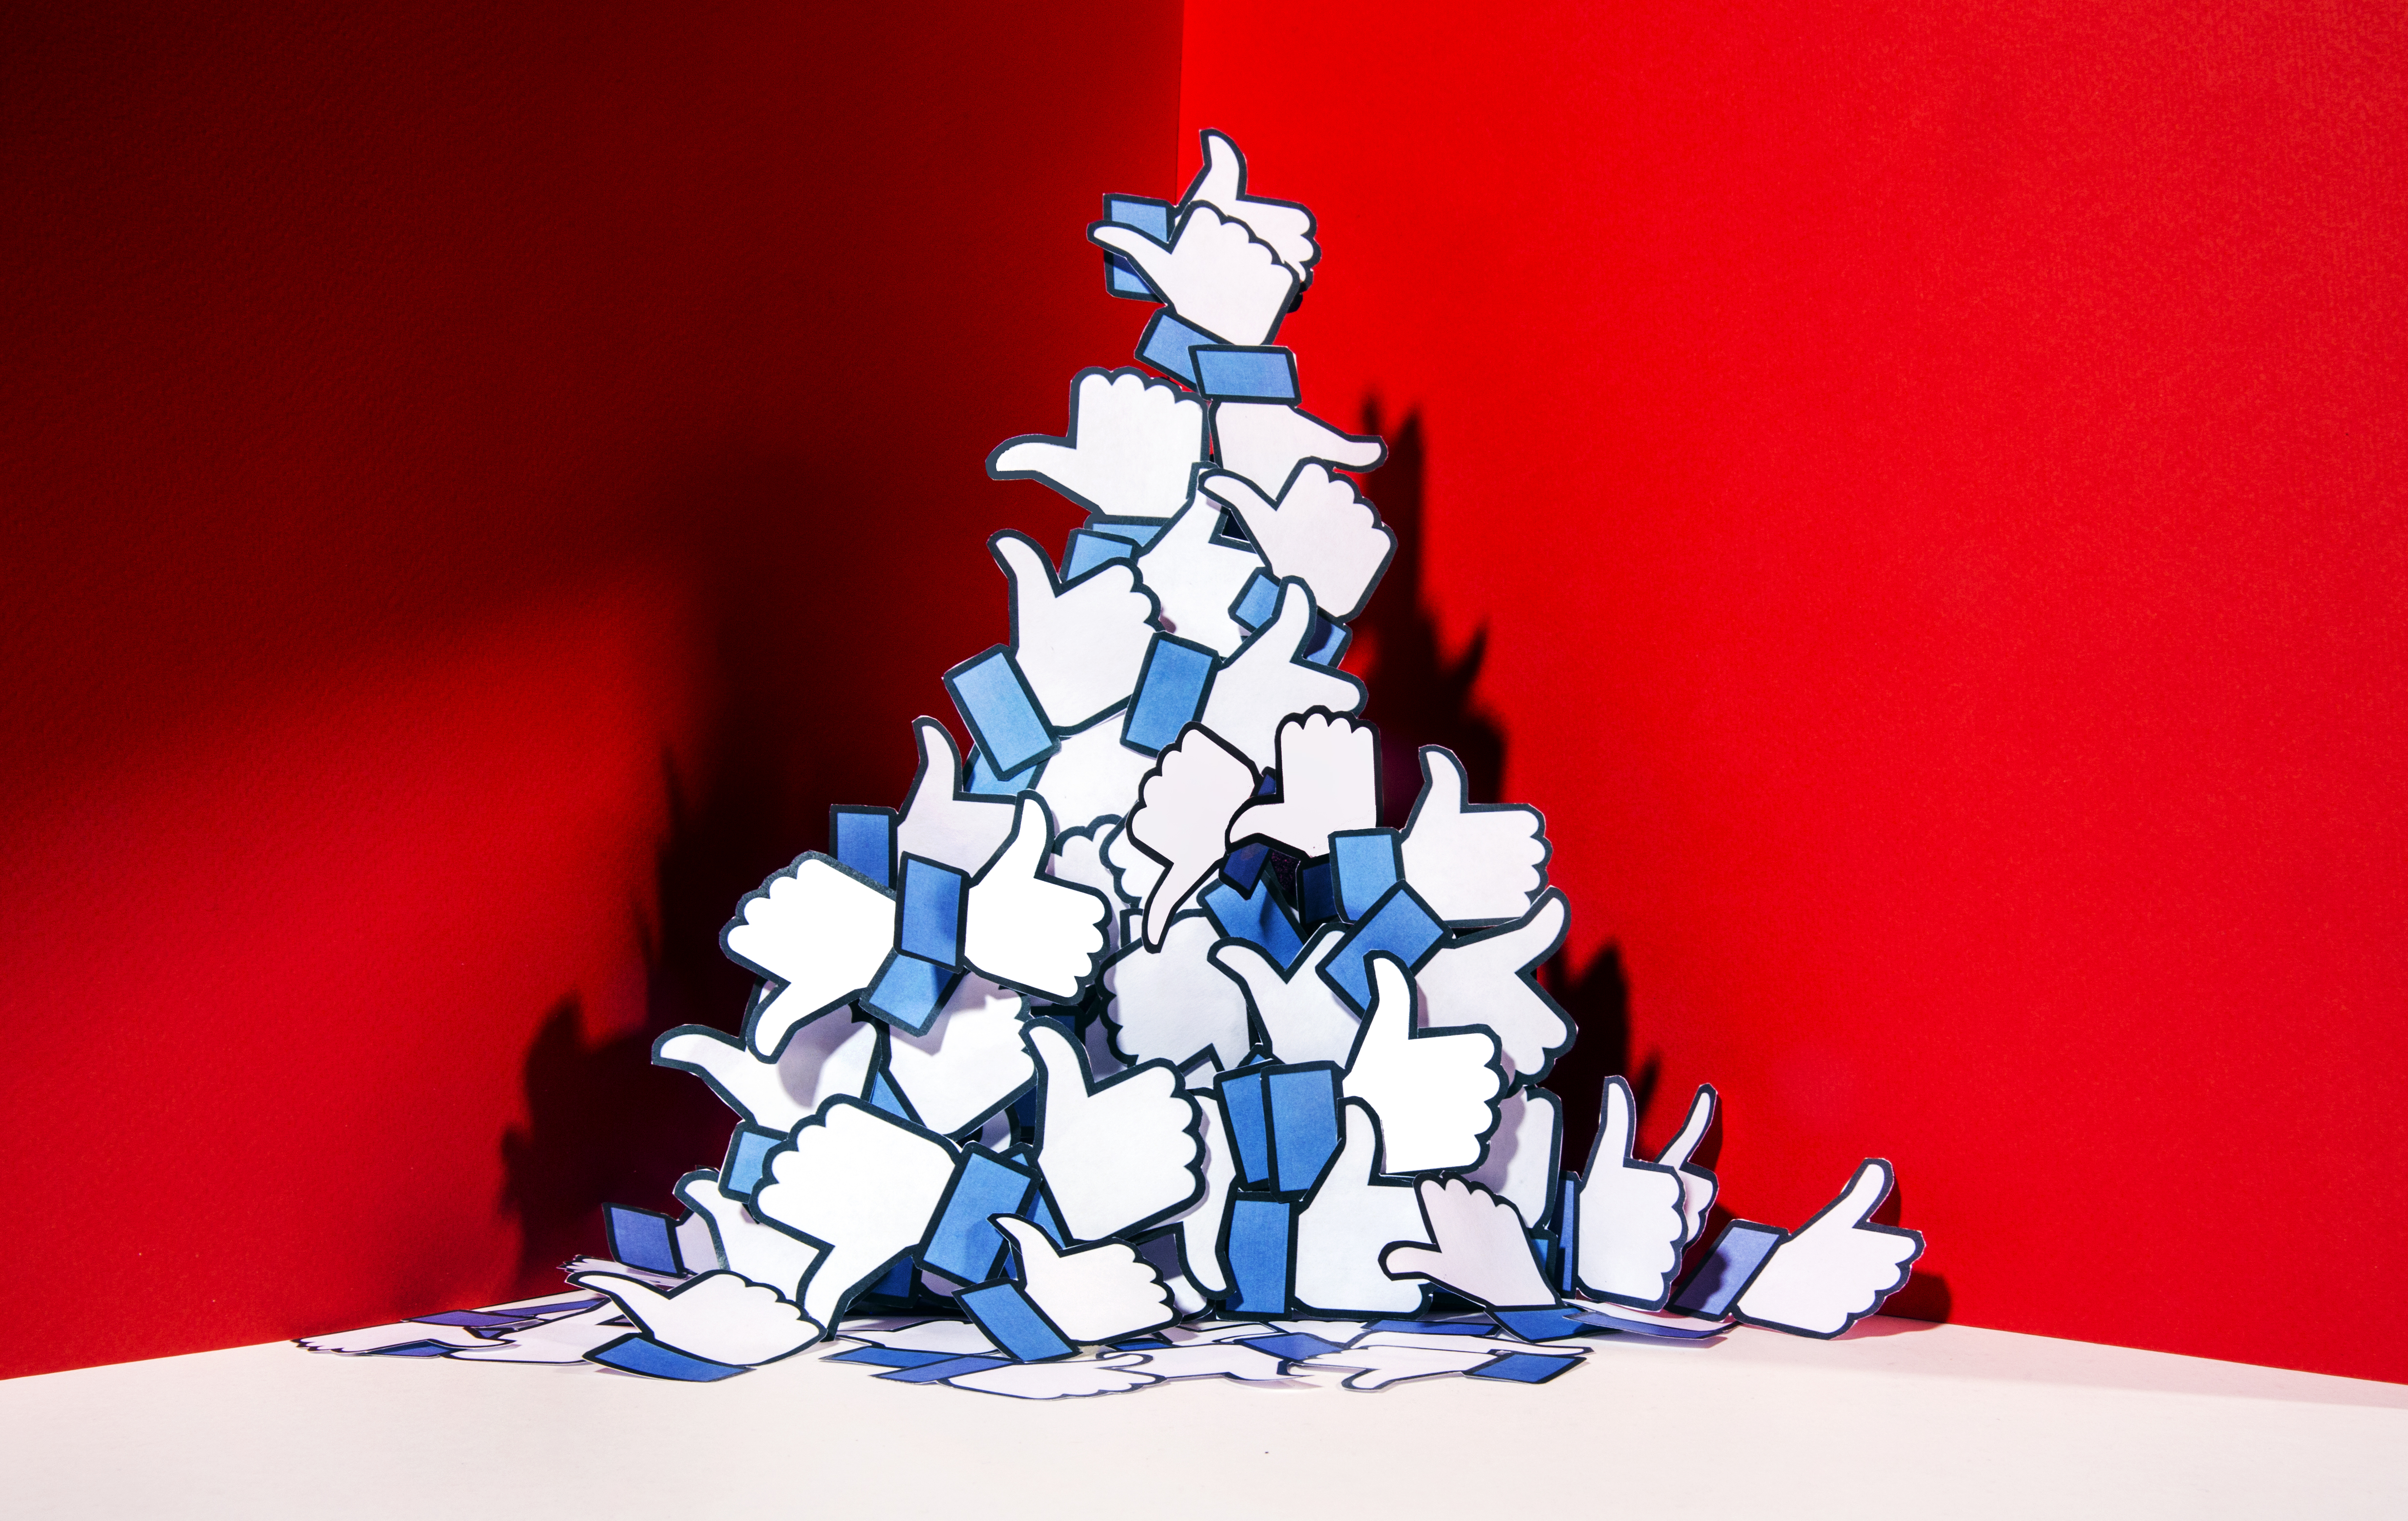 A drawing of a pile of the Facebook thumbs-up icons.